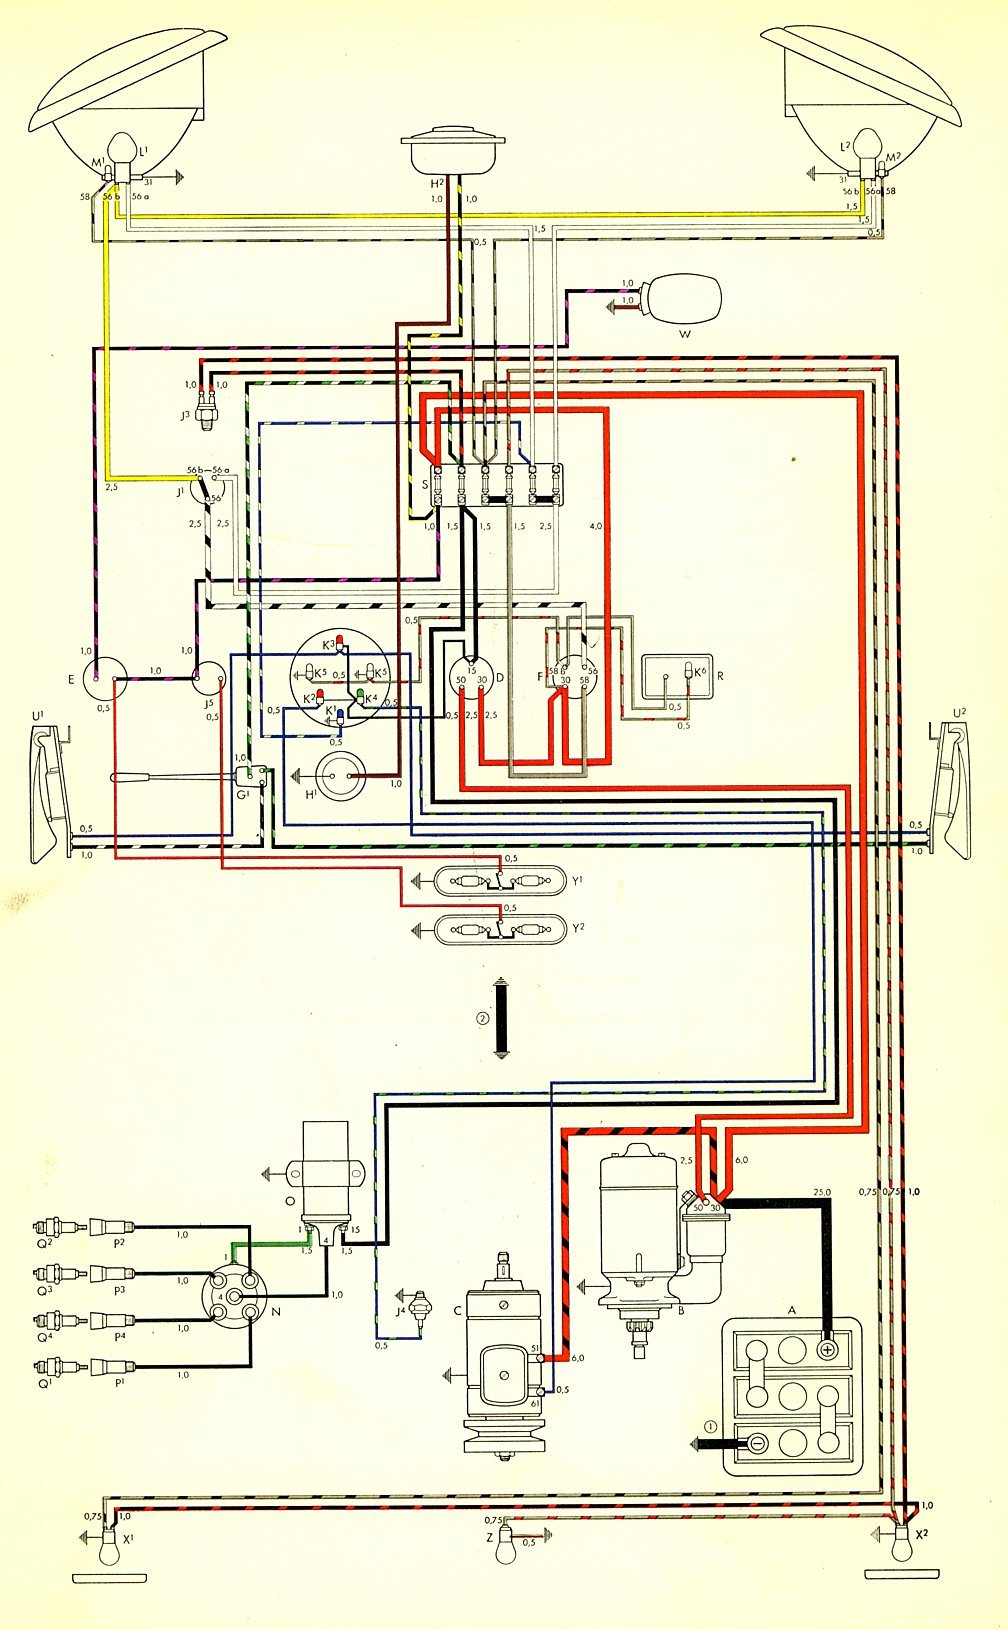 bus_59 vw bus wiring diagram 1965 vw bus wiring diagram \u2022 wiring diagrams Air 1964 Bel at alyssarenee.co